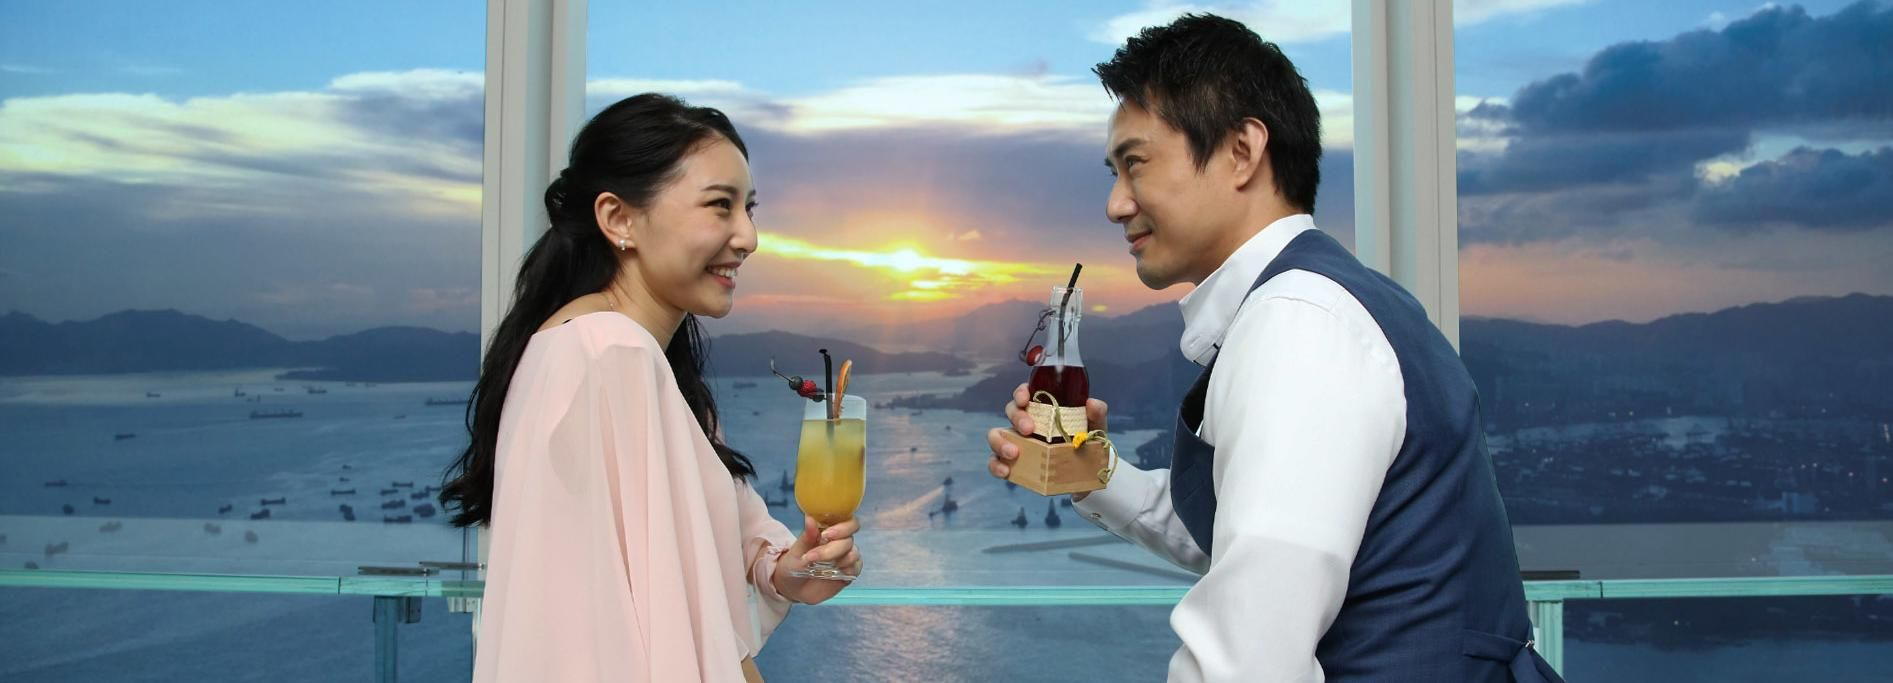 Hong Kong: Sky100 Observatory with Wine & Beverage Packages